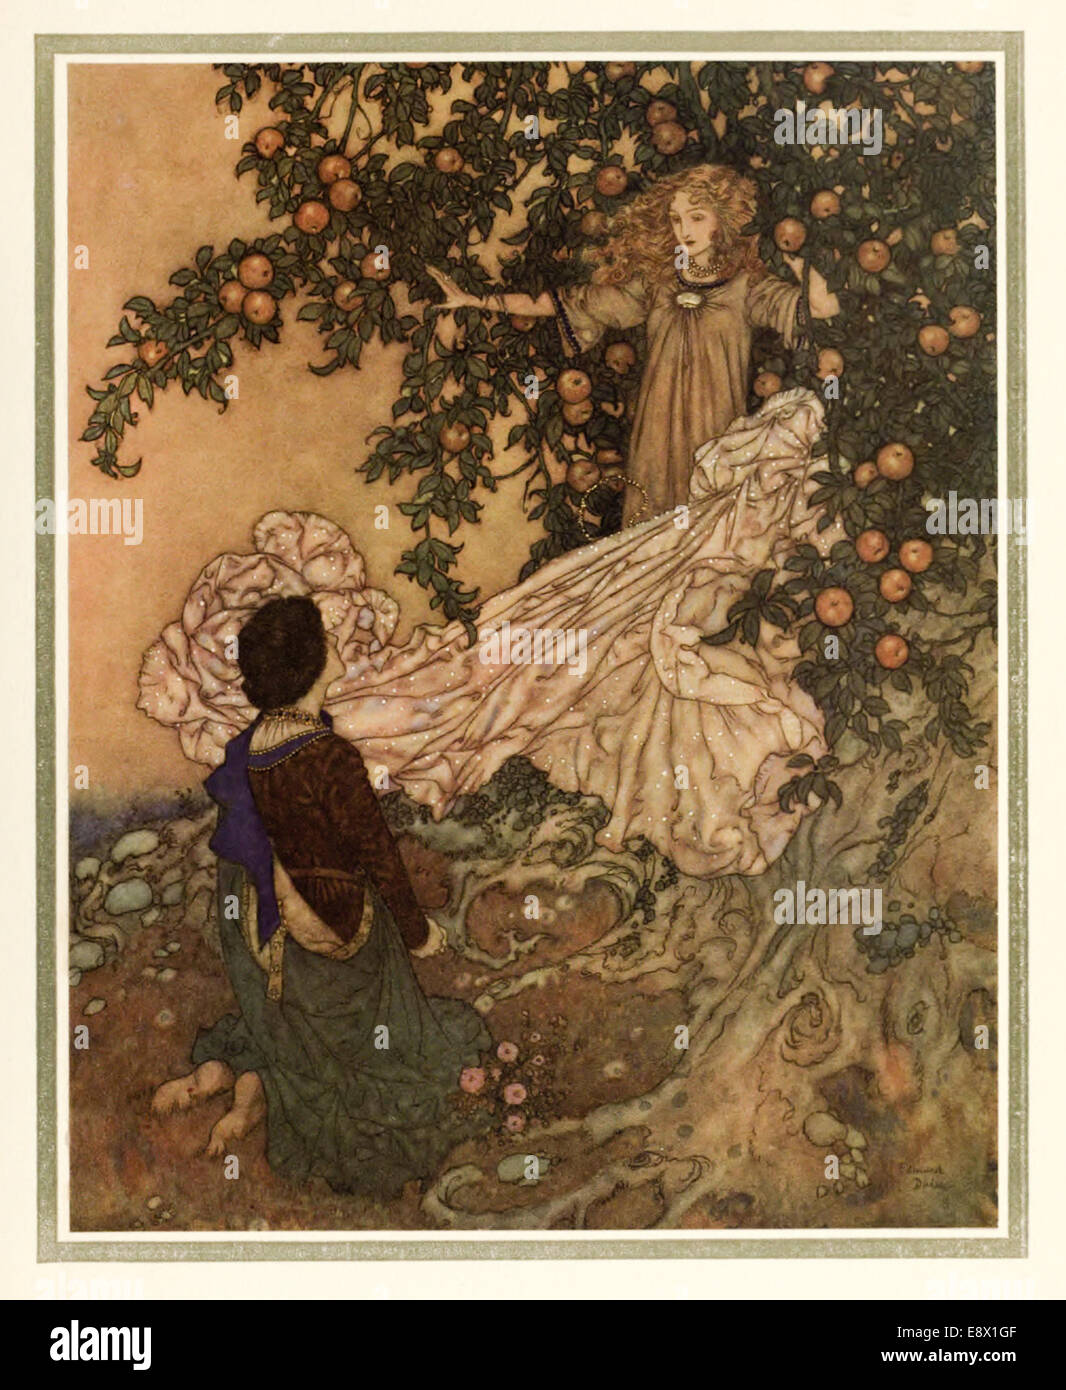 The Garden of Paradise - Edmund Dulac illustration from \'Stories ...